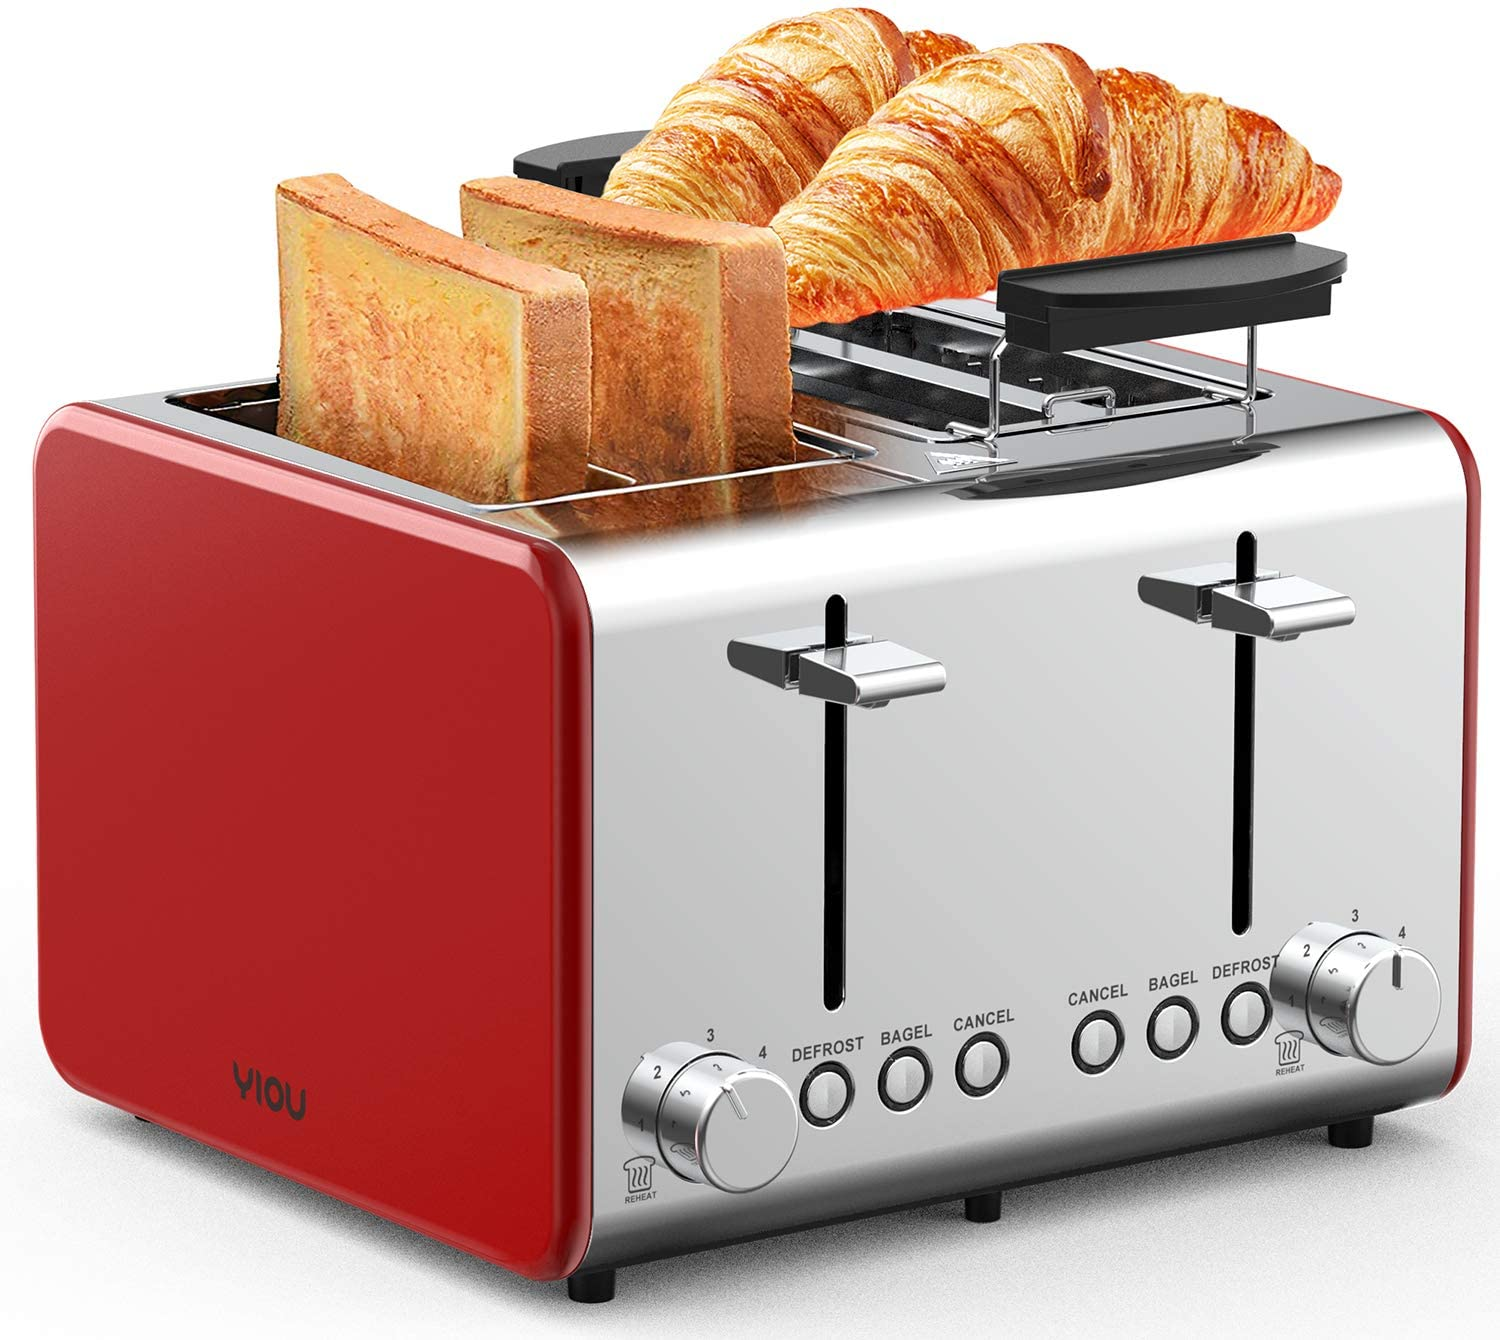 YIOU Toaster 4 Slice Stainless Steel 4 Slice Toaster with Warming Rack 1.5 Inch Extra Wide Slots 6 Browning Setting Bagel Toaster Reheat Defrost Cancel Function Removable Crumb Tray Red T4S-Red